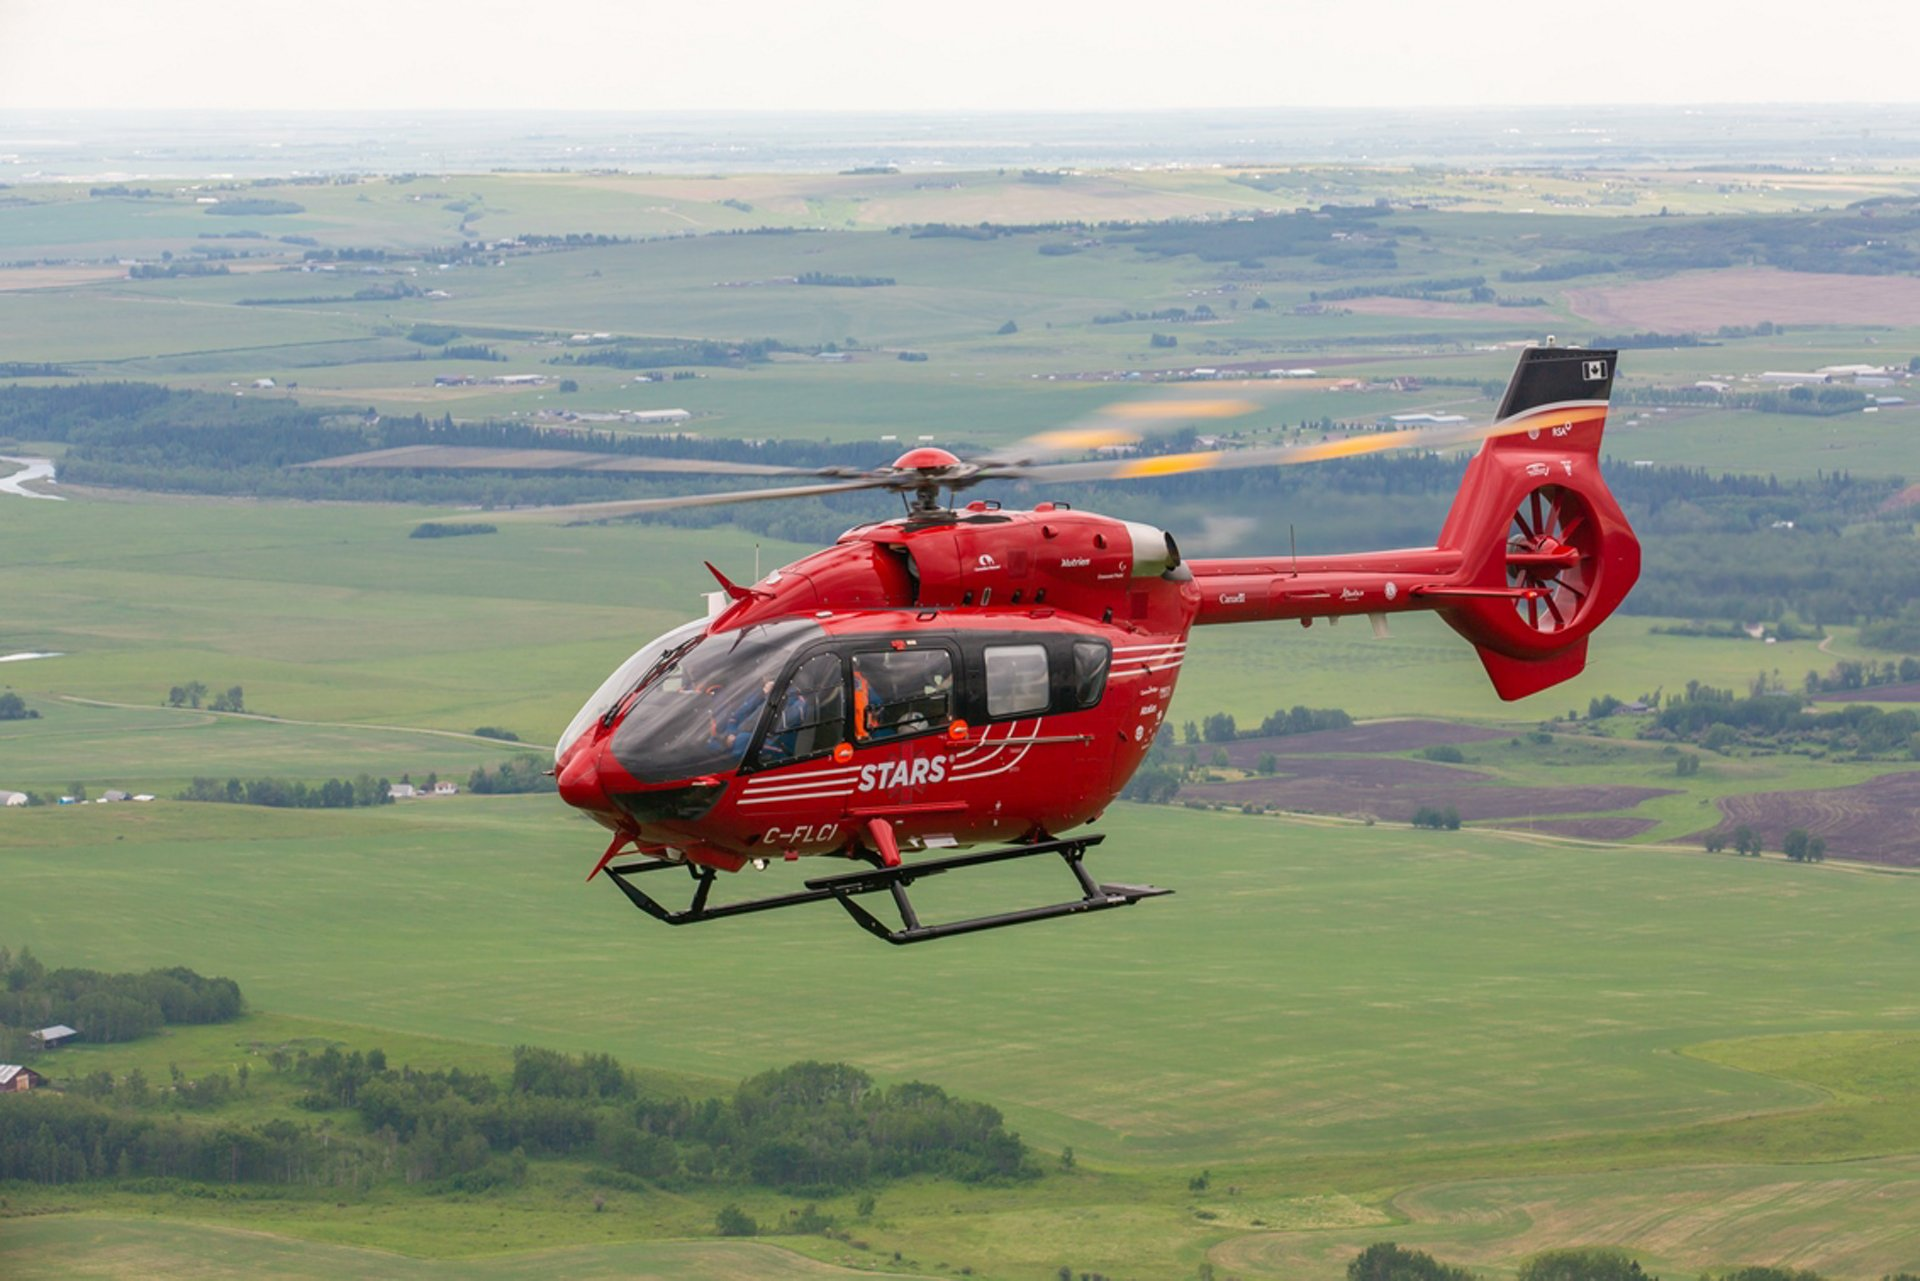 Nonprofit air ambulance provider, STARS has signed its first HCare support and service contract, which also represents the first HCare contract Airbus has secured in Canada.